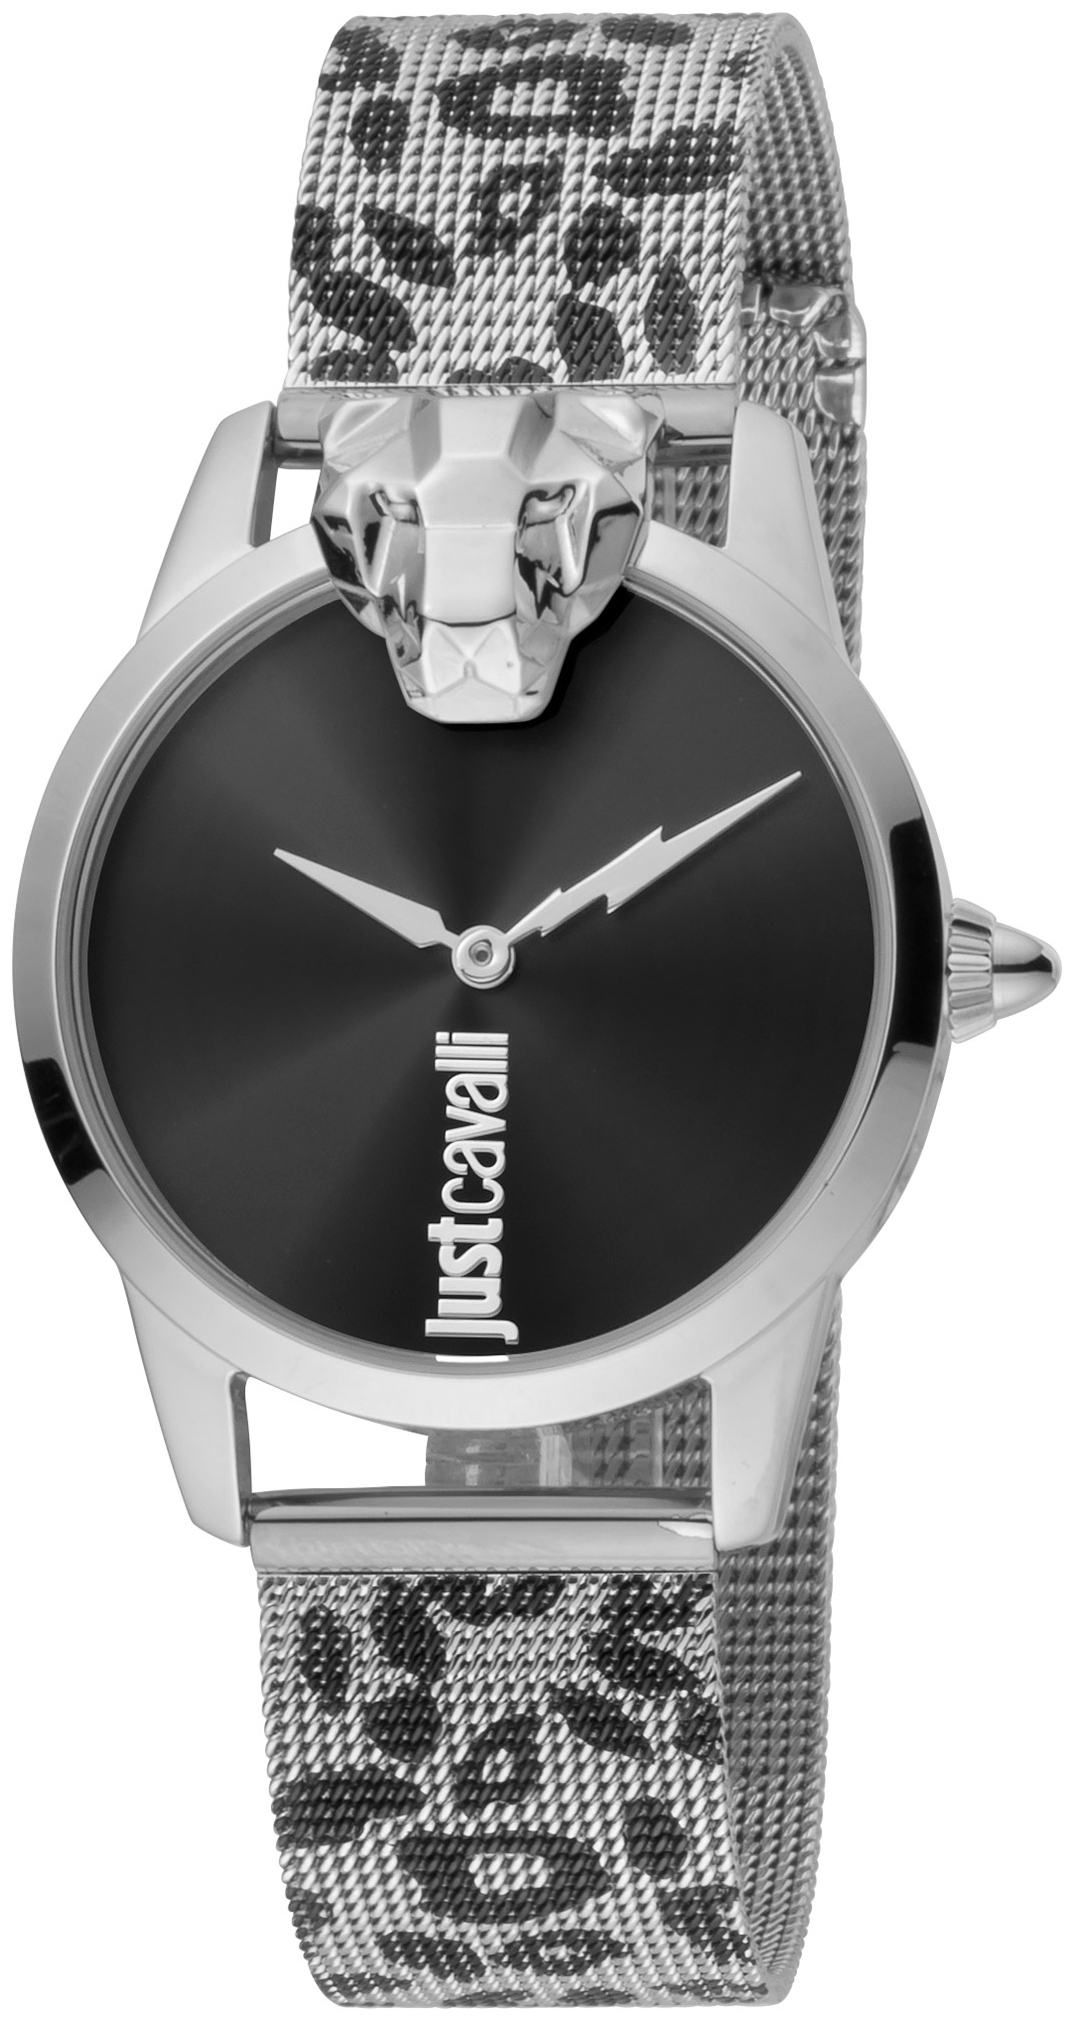 Just Cavalli 99999 Dameklokke JC1L057M0265 Sort/Stål Ø32 mm - Just Cavalli